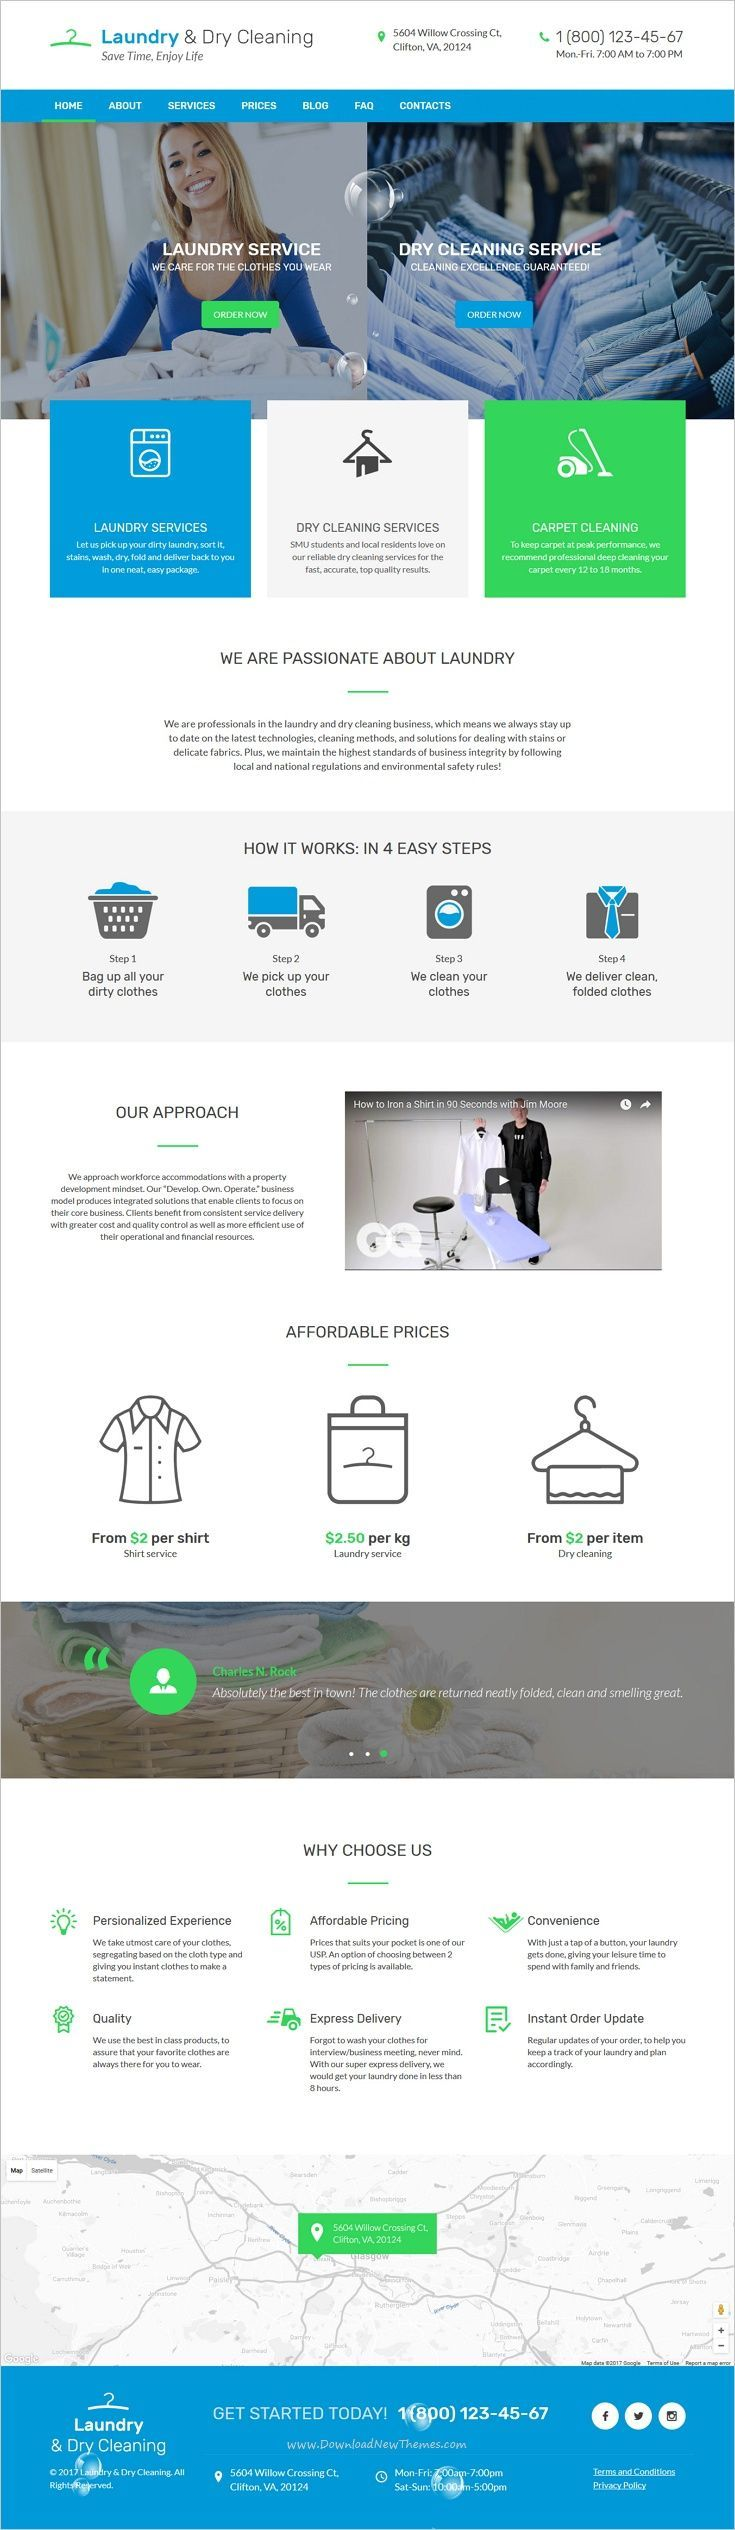 Web Design Cleaning Design Dry Cleaning Web Design Clean Web Design Ideas Clean Web Design Ecommerce Clean Web In 2020 Web Design Clean Web Design Dry Cleaning